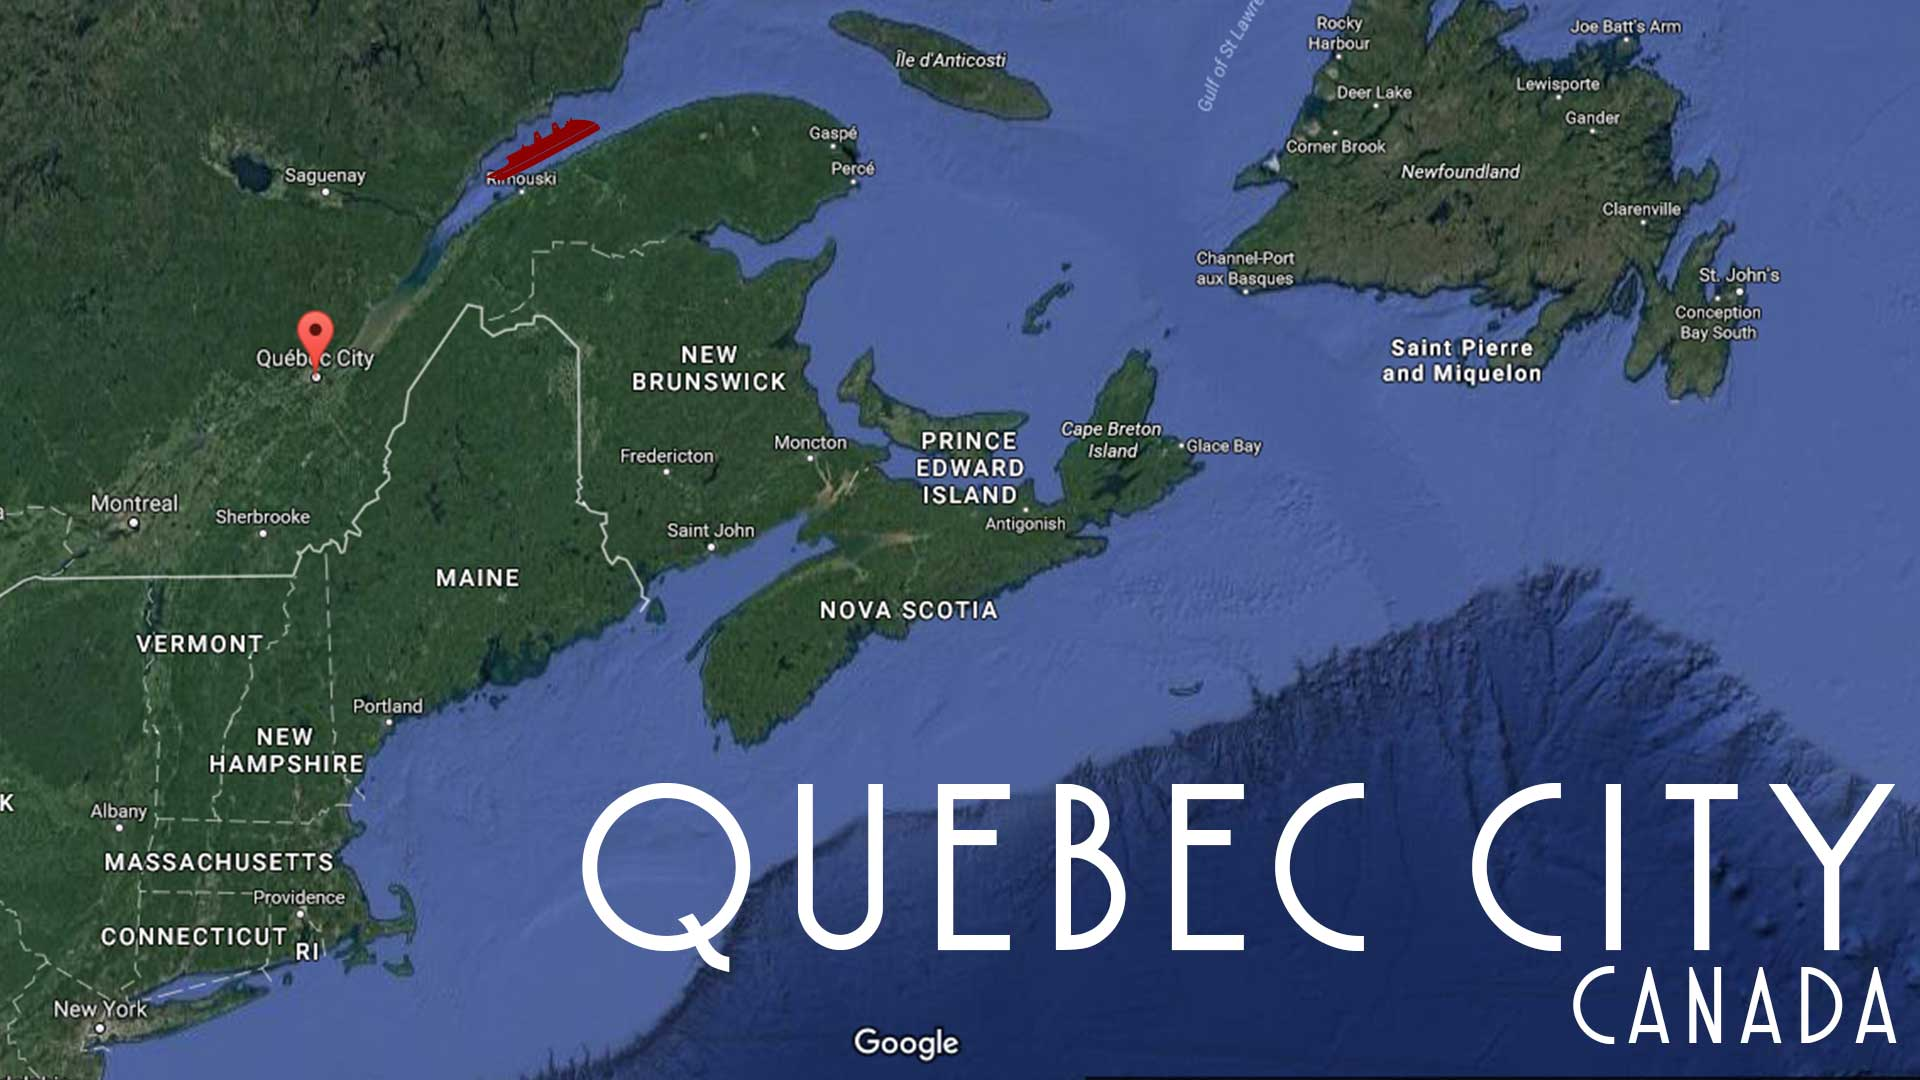 Map-Quebec-Canada-Satellite Dvc Map on disney map, disneyland map, kidani village map, nlc map, princess map, valley college map, wdw resort map, 3m map, dcs map, hilton head map, sony map, port orleans riverside map, key west map, drc map, nfl map, epcot map, ssc map, kirby map,